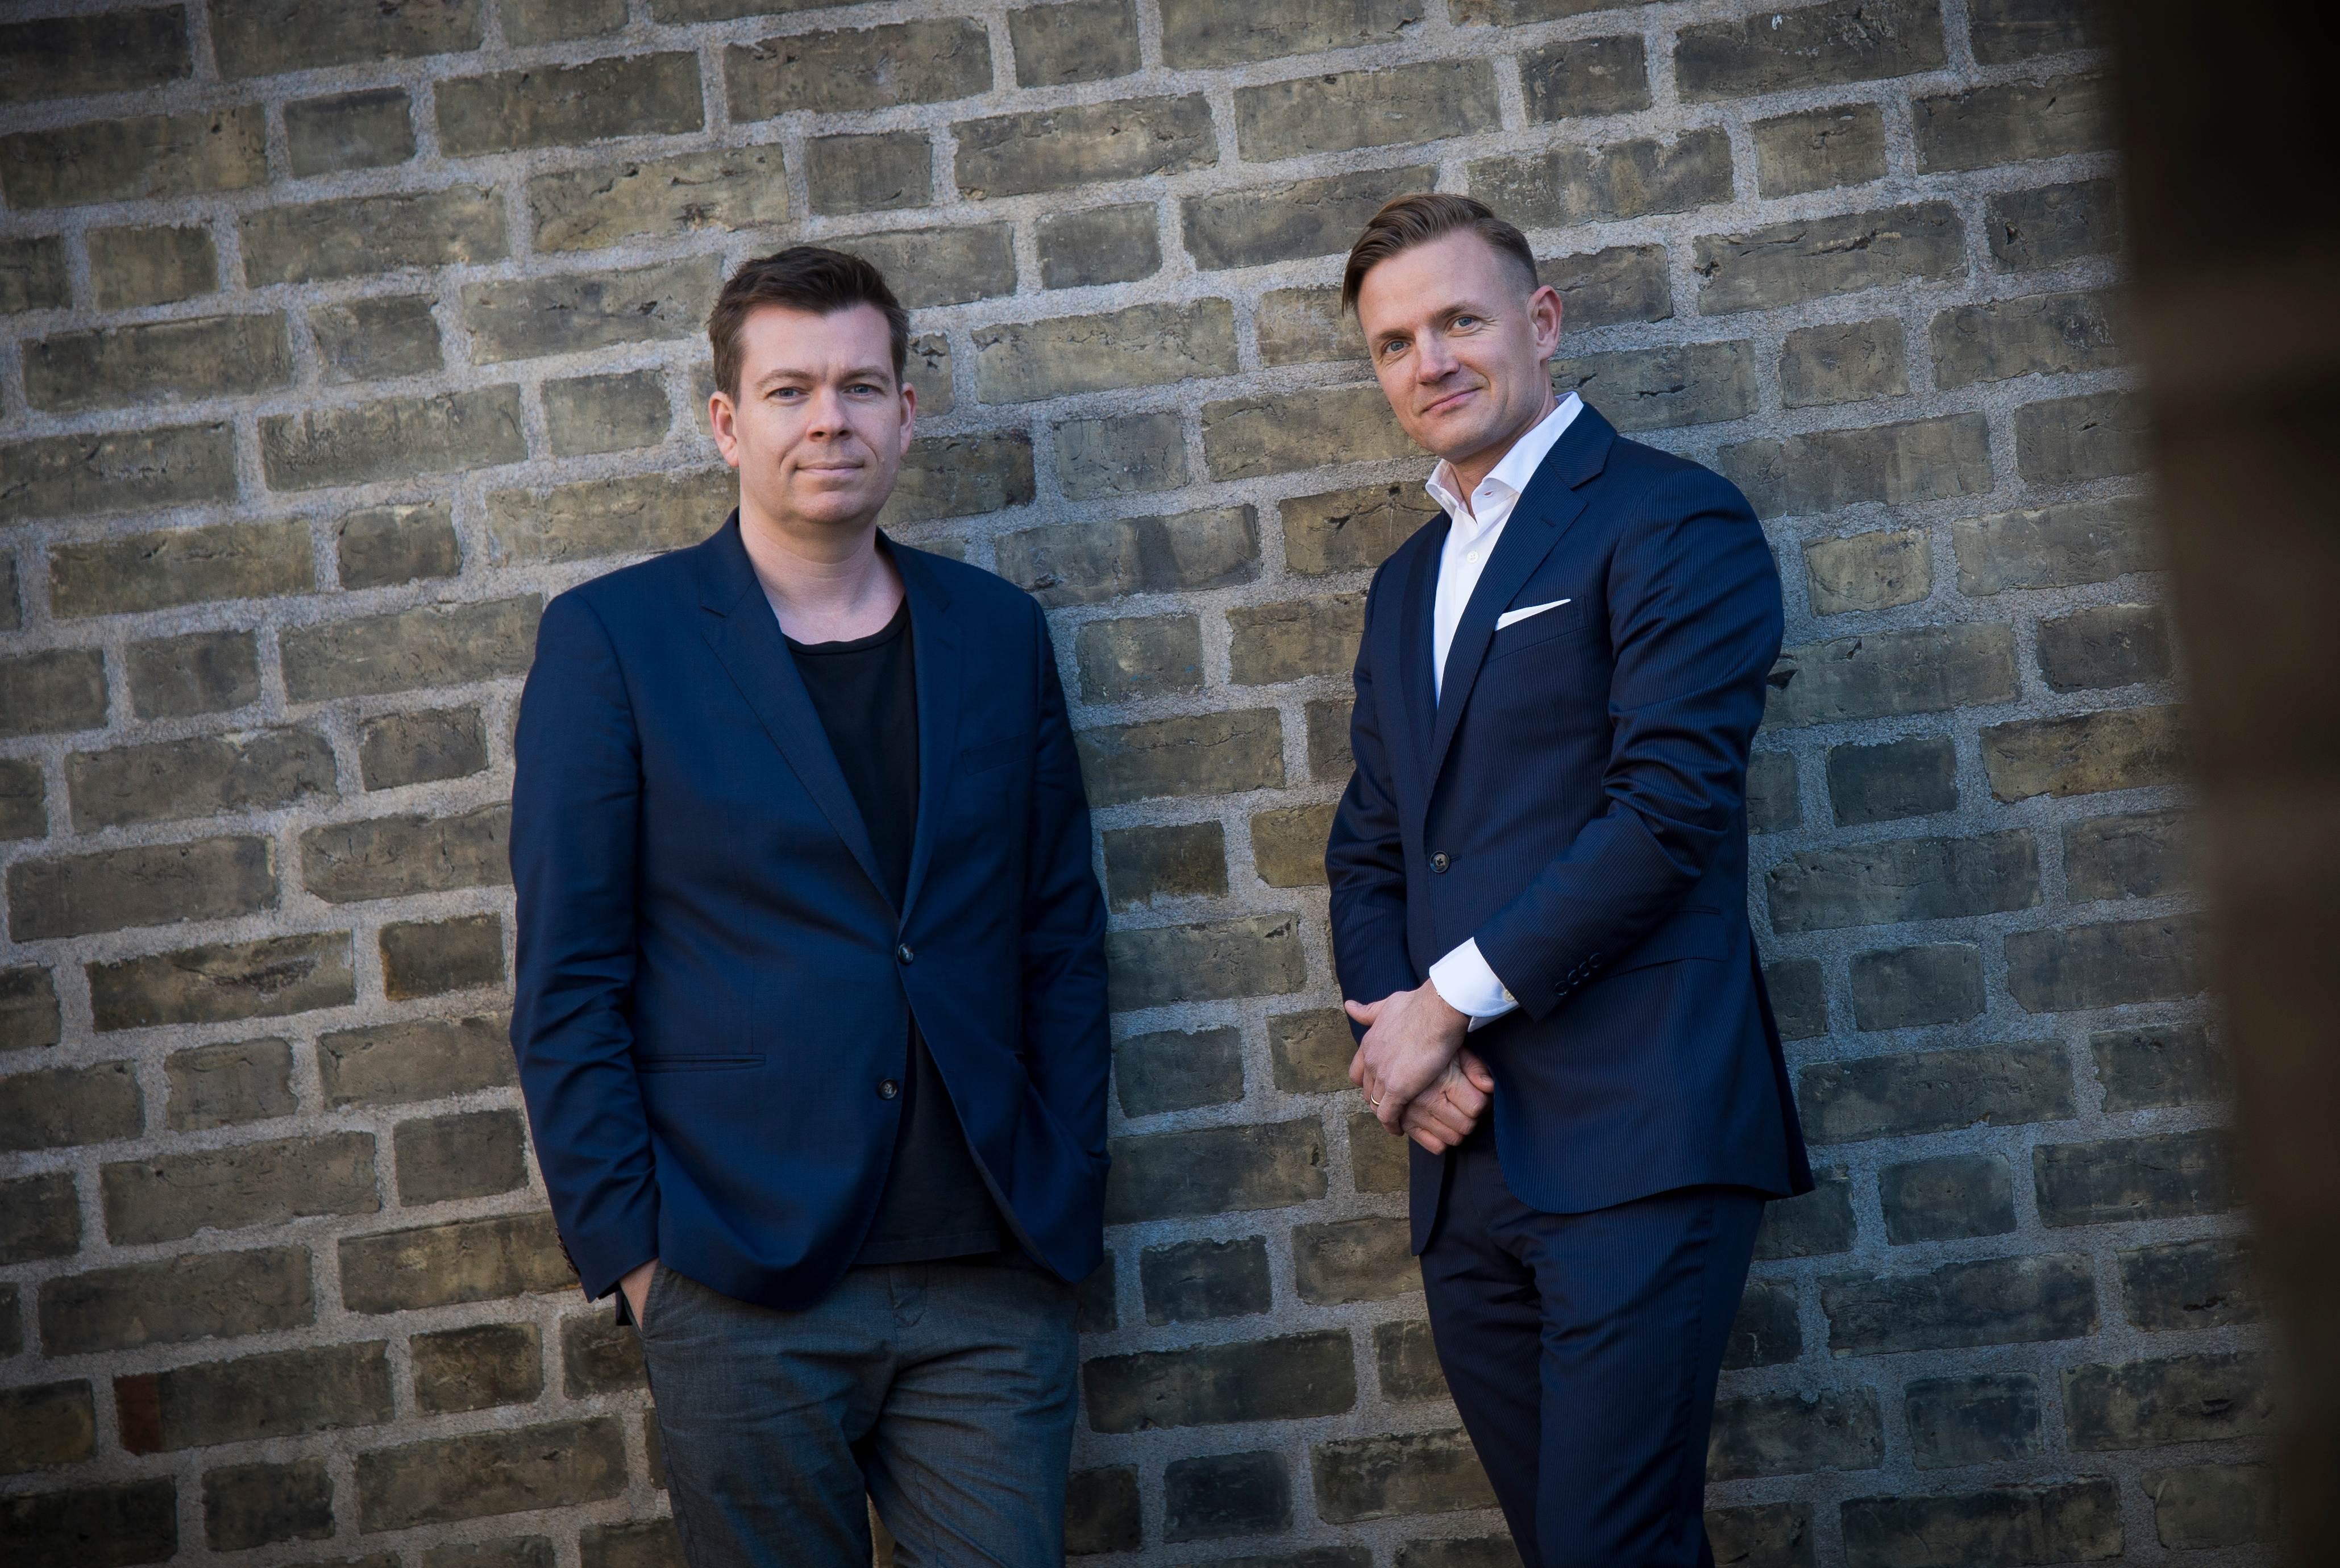 The co-founders of LEAPWORK, Christian Brink Frederiksen and Claus Topholt.